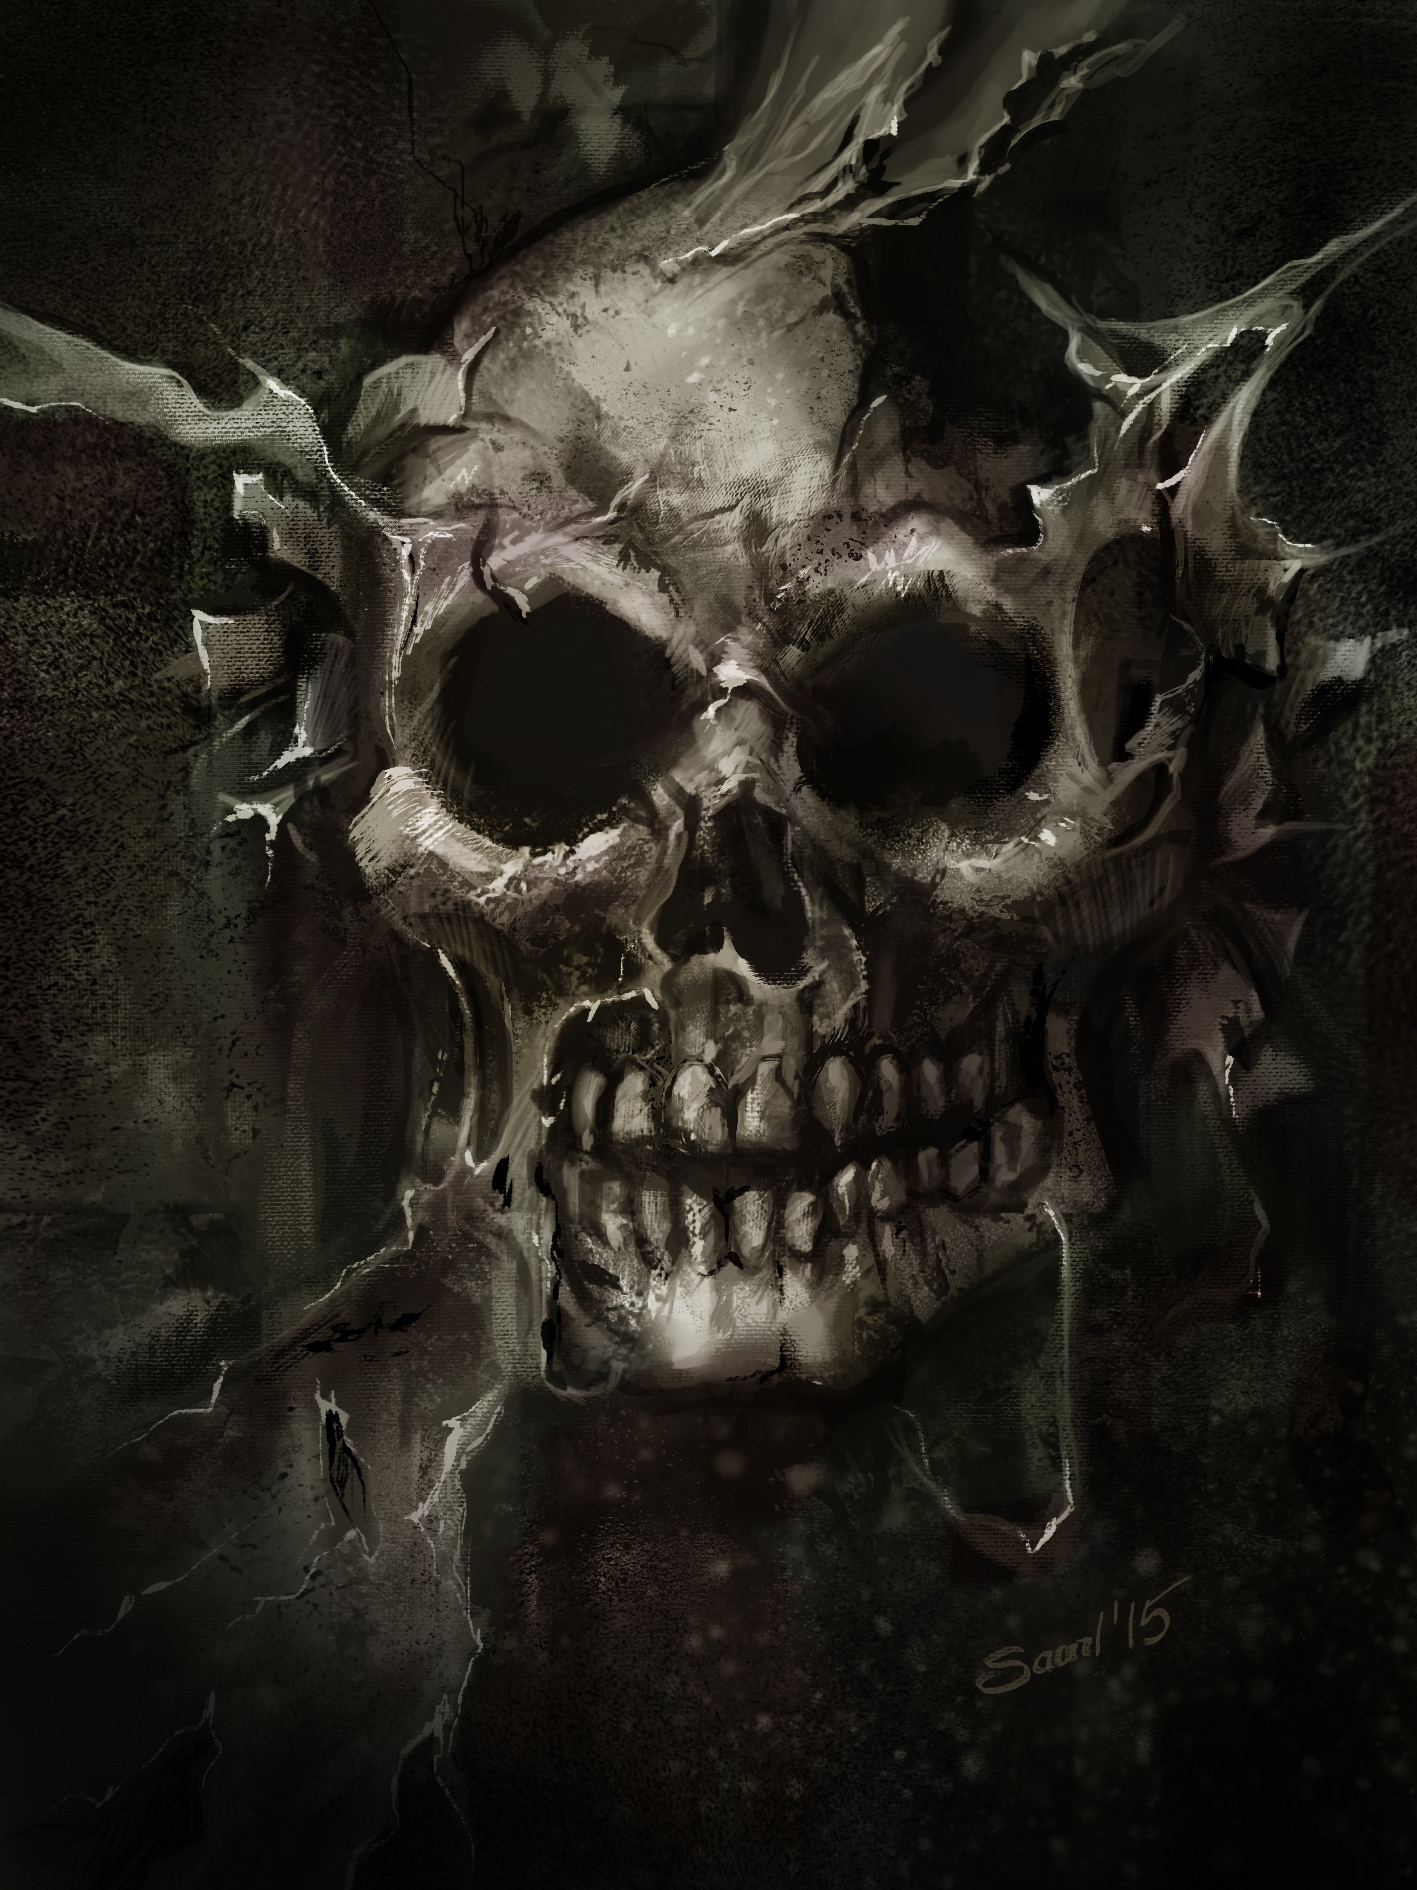 Skull-by-Saarl-wallpaper-wp429132-1